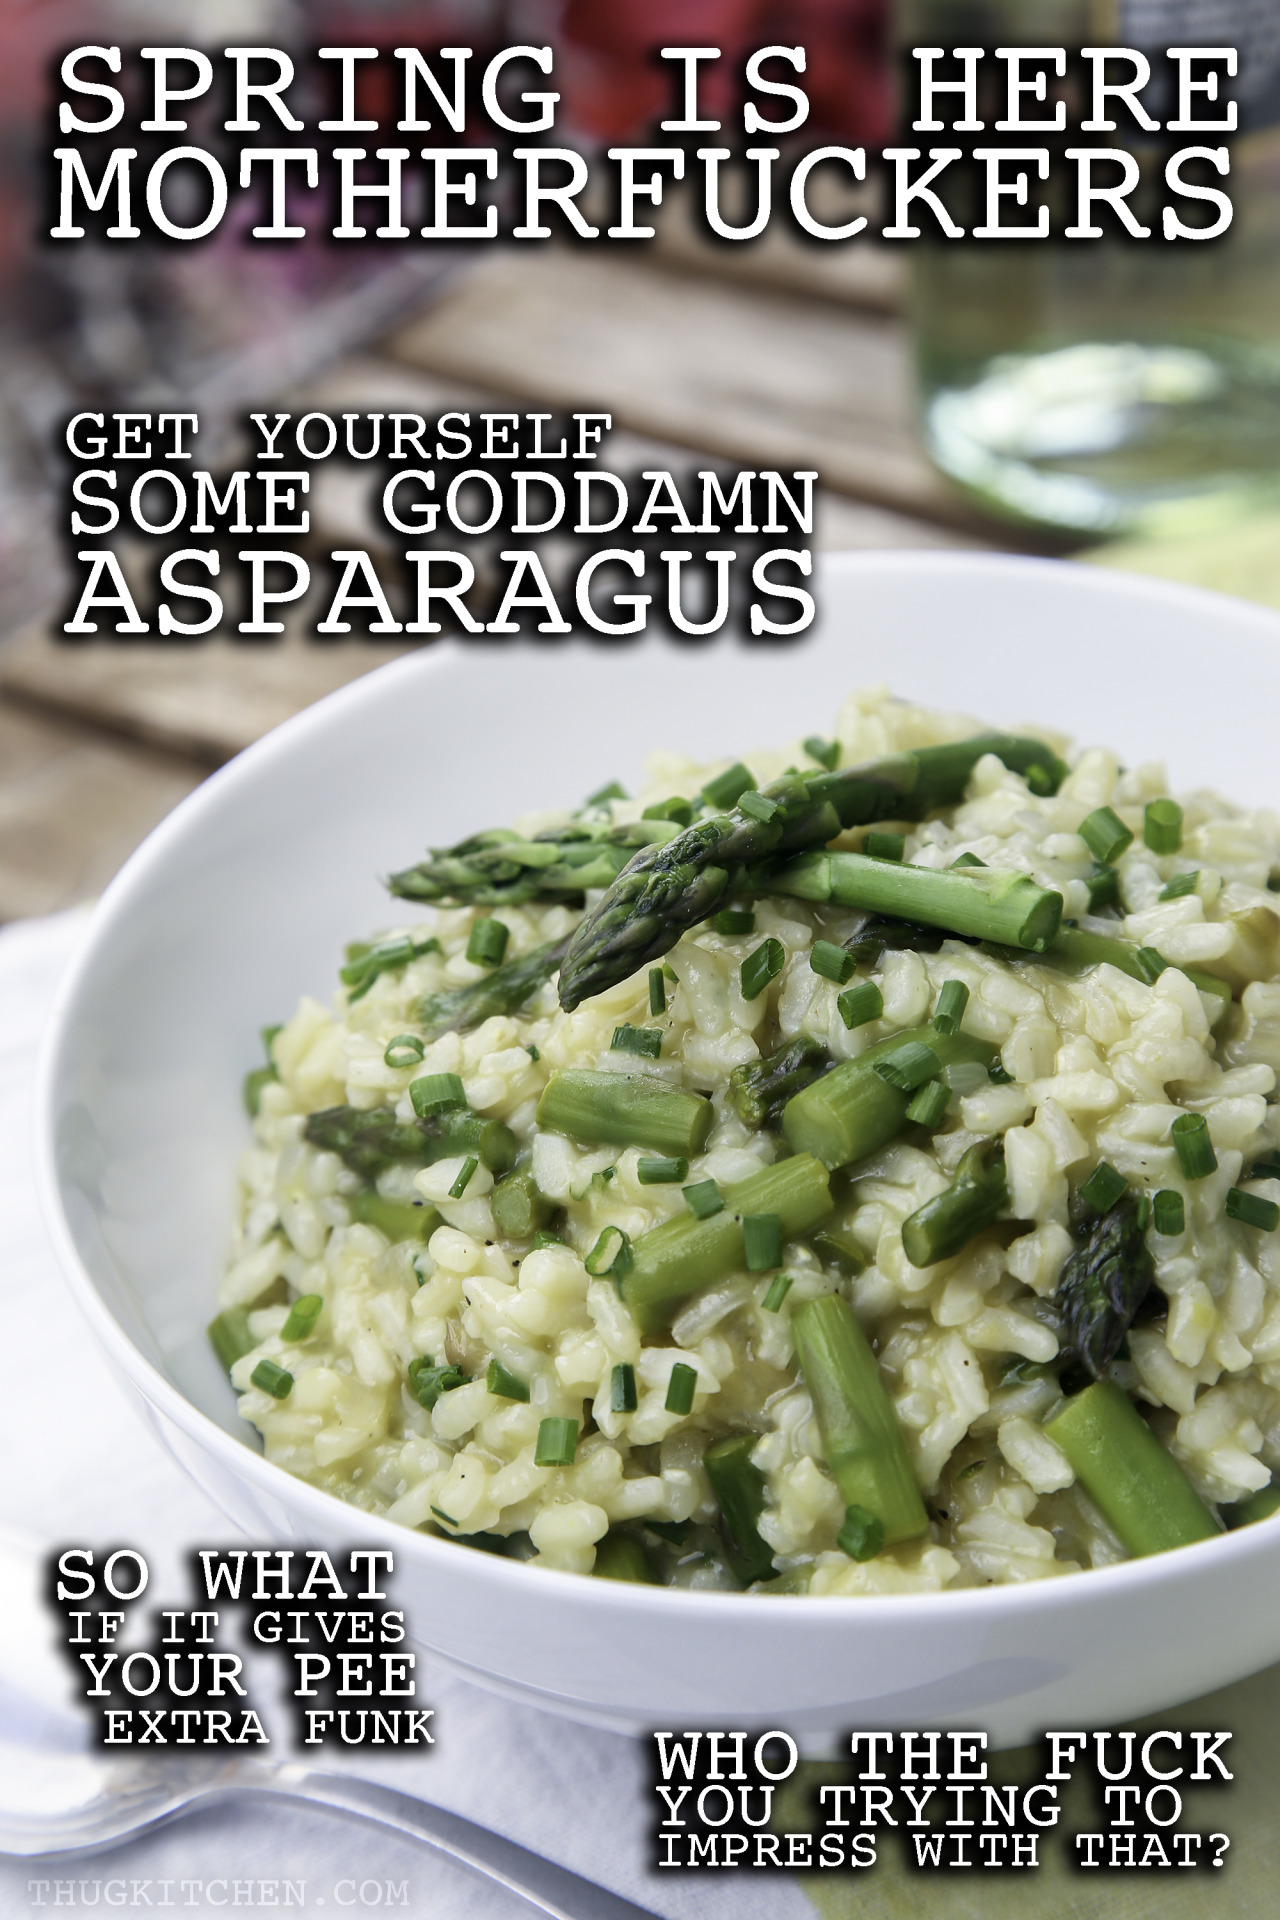 Asparagus is a solid stand-alone veggie with all its vitamin K and folate but paired with this creamy risotto? HOT DAMN. It takes this spring staple to another level.  SPRING ASPARAGUS RISOTTO Enough for 4 people 2 tablespoons olive oil 1/3 cup chopped shallots or yellow onion 3 cloves garlic, minced 1 cup Arborio rice* ½ cup white wine ¼ teaspoon salt 4 ½ cups vegetable broth 1 bunch asparagus, about 1 pound ½ teaspoon lemon zest 1 teaspoon olive oil ¼ cup minced chives pepper to taste Warm up the veggie broth in a medium pot until it gently simmers then turn off the heat. Chop up the shallots, garlic, and asparagus. You'll want the asparagus in pieces about an inch long, like bite-sized. Cut off the tough ends because those woody sons of bitches will ruin everything.  In a large skillet or pot with a wide bottom, heat up the 2 tablespoons of oil over a medium heat. Add the shallots and sauté them around until they start to look kinda golden, about 2-3 minutes. Add the garlic and rice and sauté until the rice smells toasted and starts looking like it absorbed some of the oil, about 2 more minutes. This helps make your risotto all creamy SO DON'T SKIP THIS SHIT. Add the white wine and salt to the pot and cook until most of the wine has evaporated and you scraped whatever bits of shallot got stuck to the bottom of the pot, like a minute or 2. Drink the rest wine because… well, that shits already open. Might as well. Now add 2 cups of the warm broth, stir, and lower the heat so that the pot is at a simmer, uncovered. Stir every couple of minutes until most of the broth has absorbed into the rice, about 7-10 minutes. You don't need to stand there and stir it the whole fucking time; whoever started that rumor about cooking risotto is a goddamn liar. Just stir it every minute or two while you clean up or troll the internet. Add another 2 cups of warm broth at this point, and do that whole stir and simmer thing again for another 7 minutes or until the rice tastes slightly undercooked and there's still broth in the pot. Now dump in the asparagus and cook until it's tender and the rice looks like its sitting in a creamy gravy, about 5 more minutes. If it starts looking a little dry before everything is tender, just add some more of the broth a tablespoon at a time to fix that shit.  When the rice and asparagus taste on point, turn off the heat; add the lemon zest, remaining oil, half the chives, and a little pepper. Taste and add more salt, pepper, or whateverthefuck you want. Serve right away and top with the remaining chives.  * This kind of rice is starchy as hell, so it will make your risotto the extra creamy and delicious. If you can't find it don't worry about it, just grab a short grain rice.